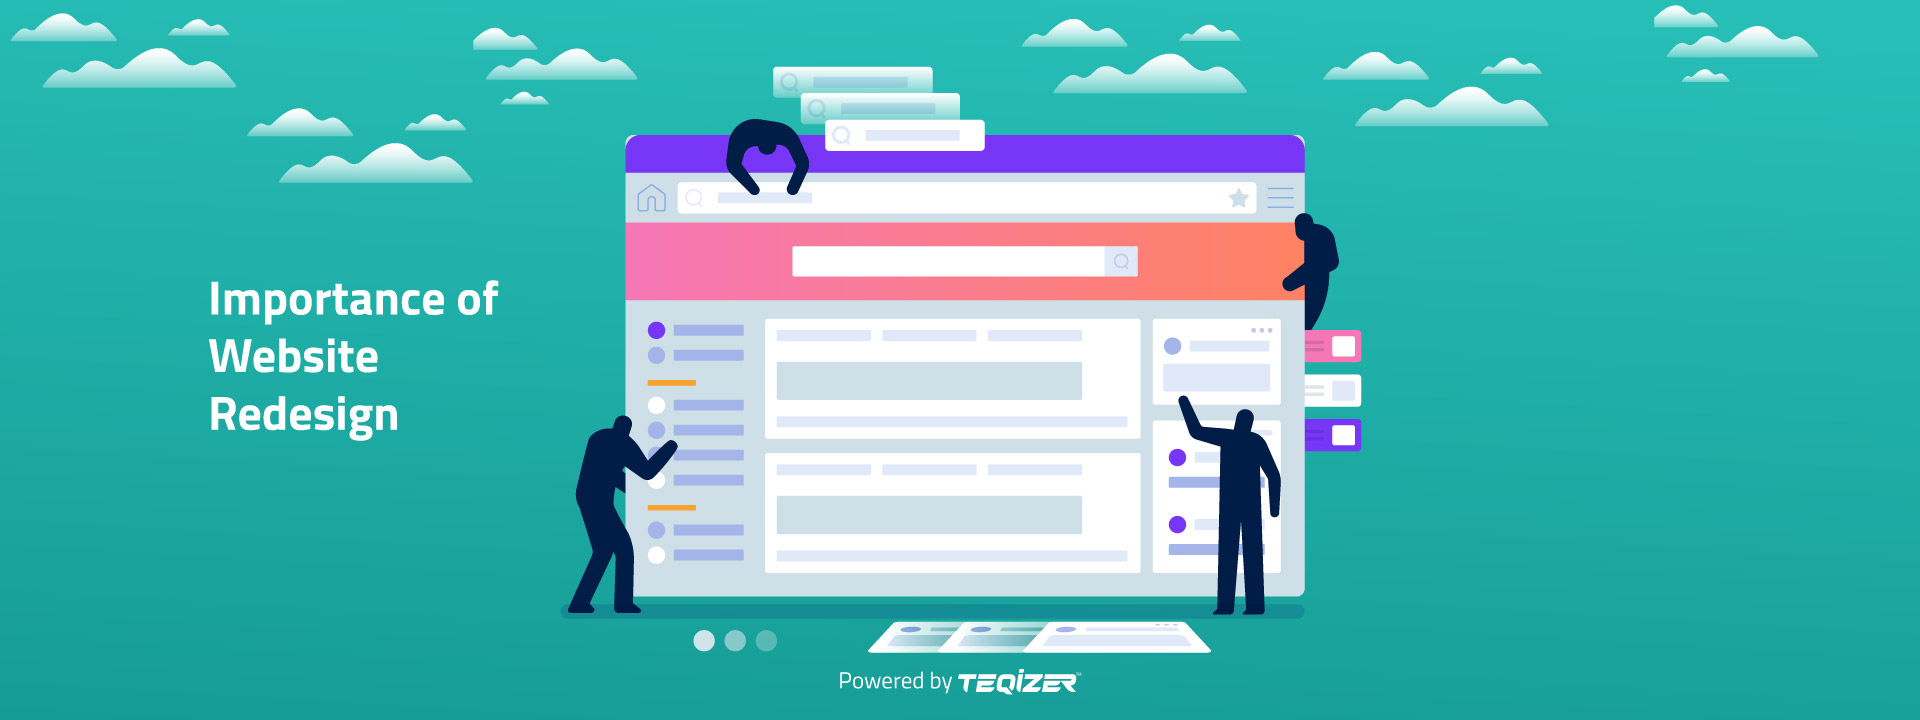 Importance of Website Redesign